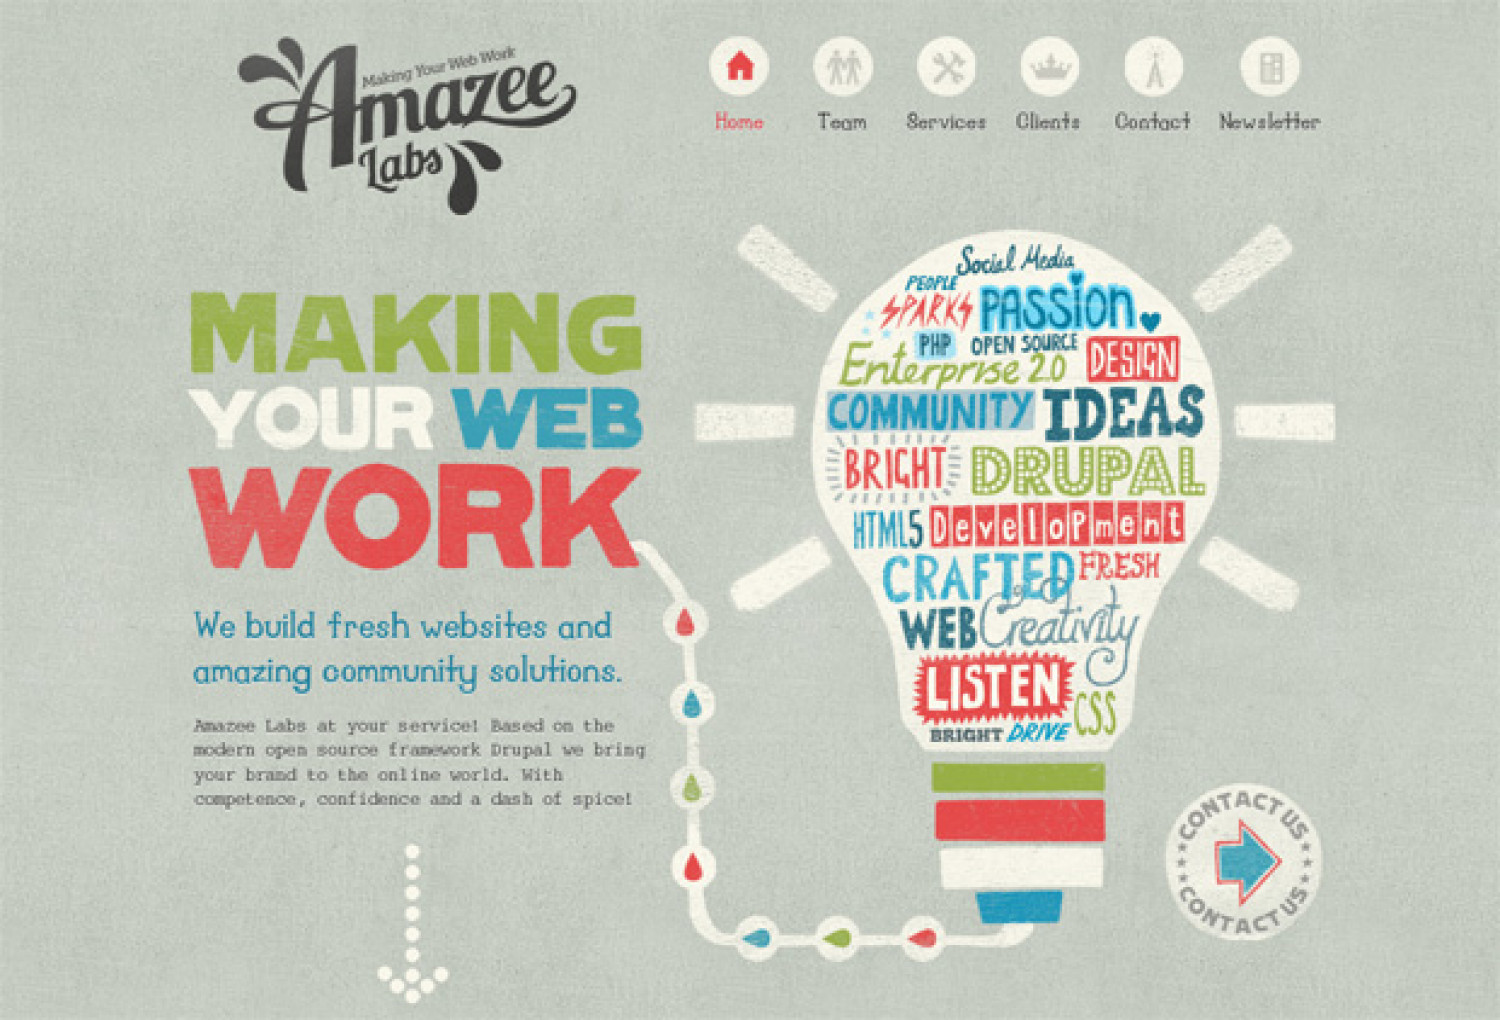 Making Your Web Work Infographic